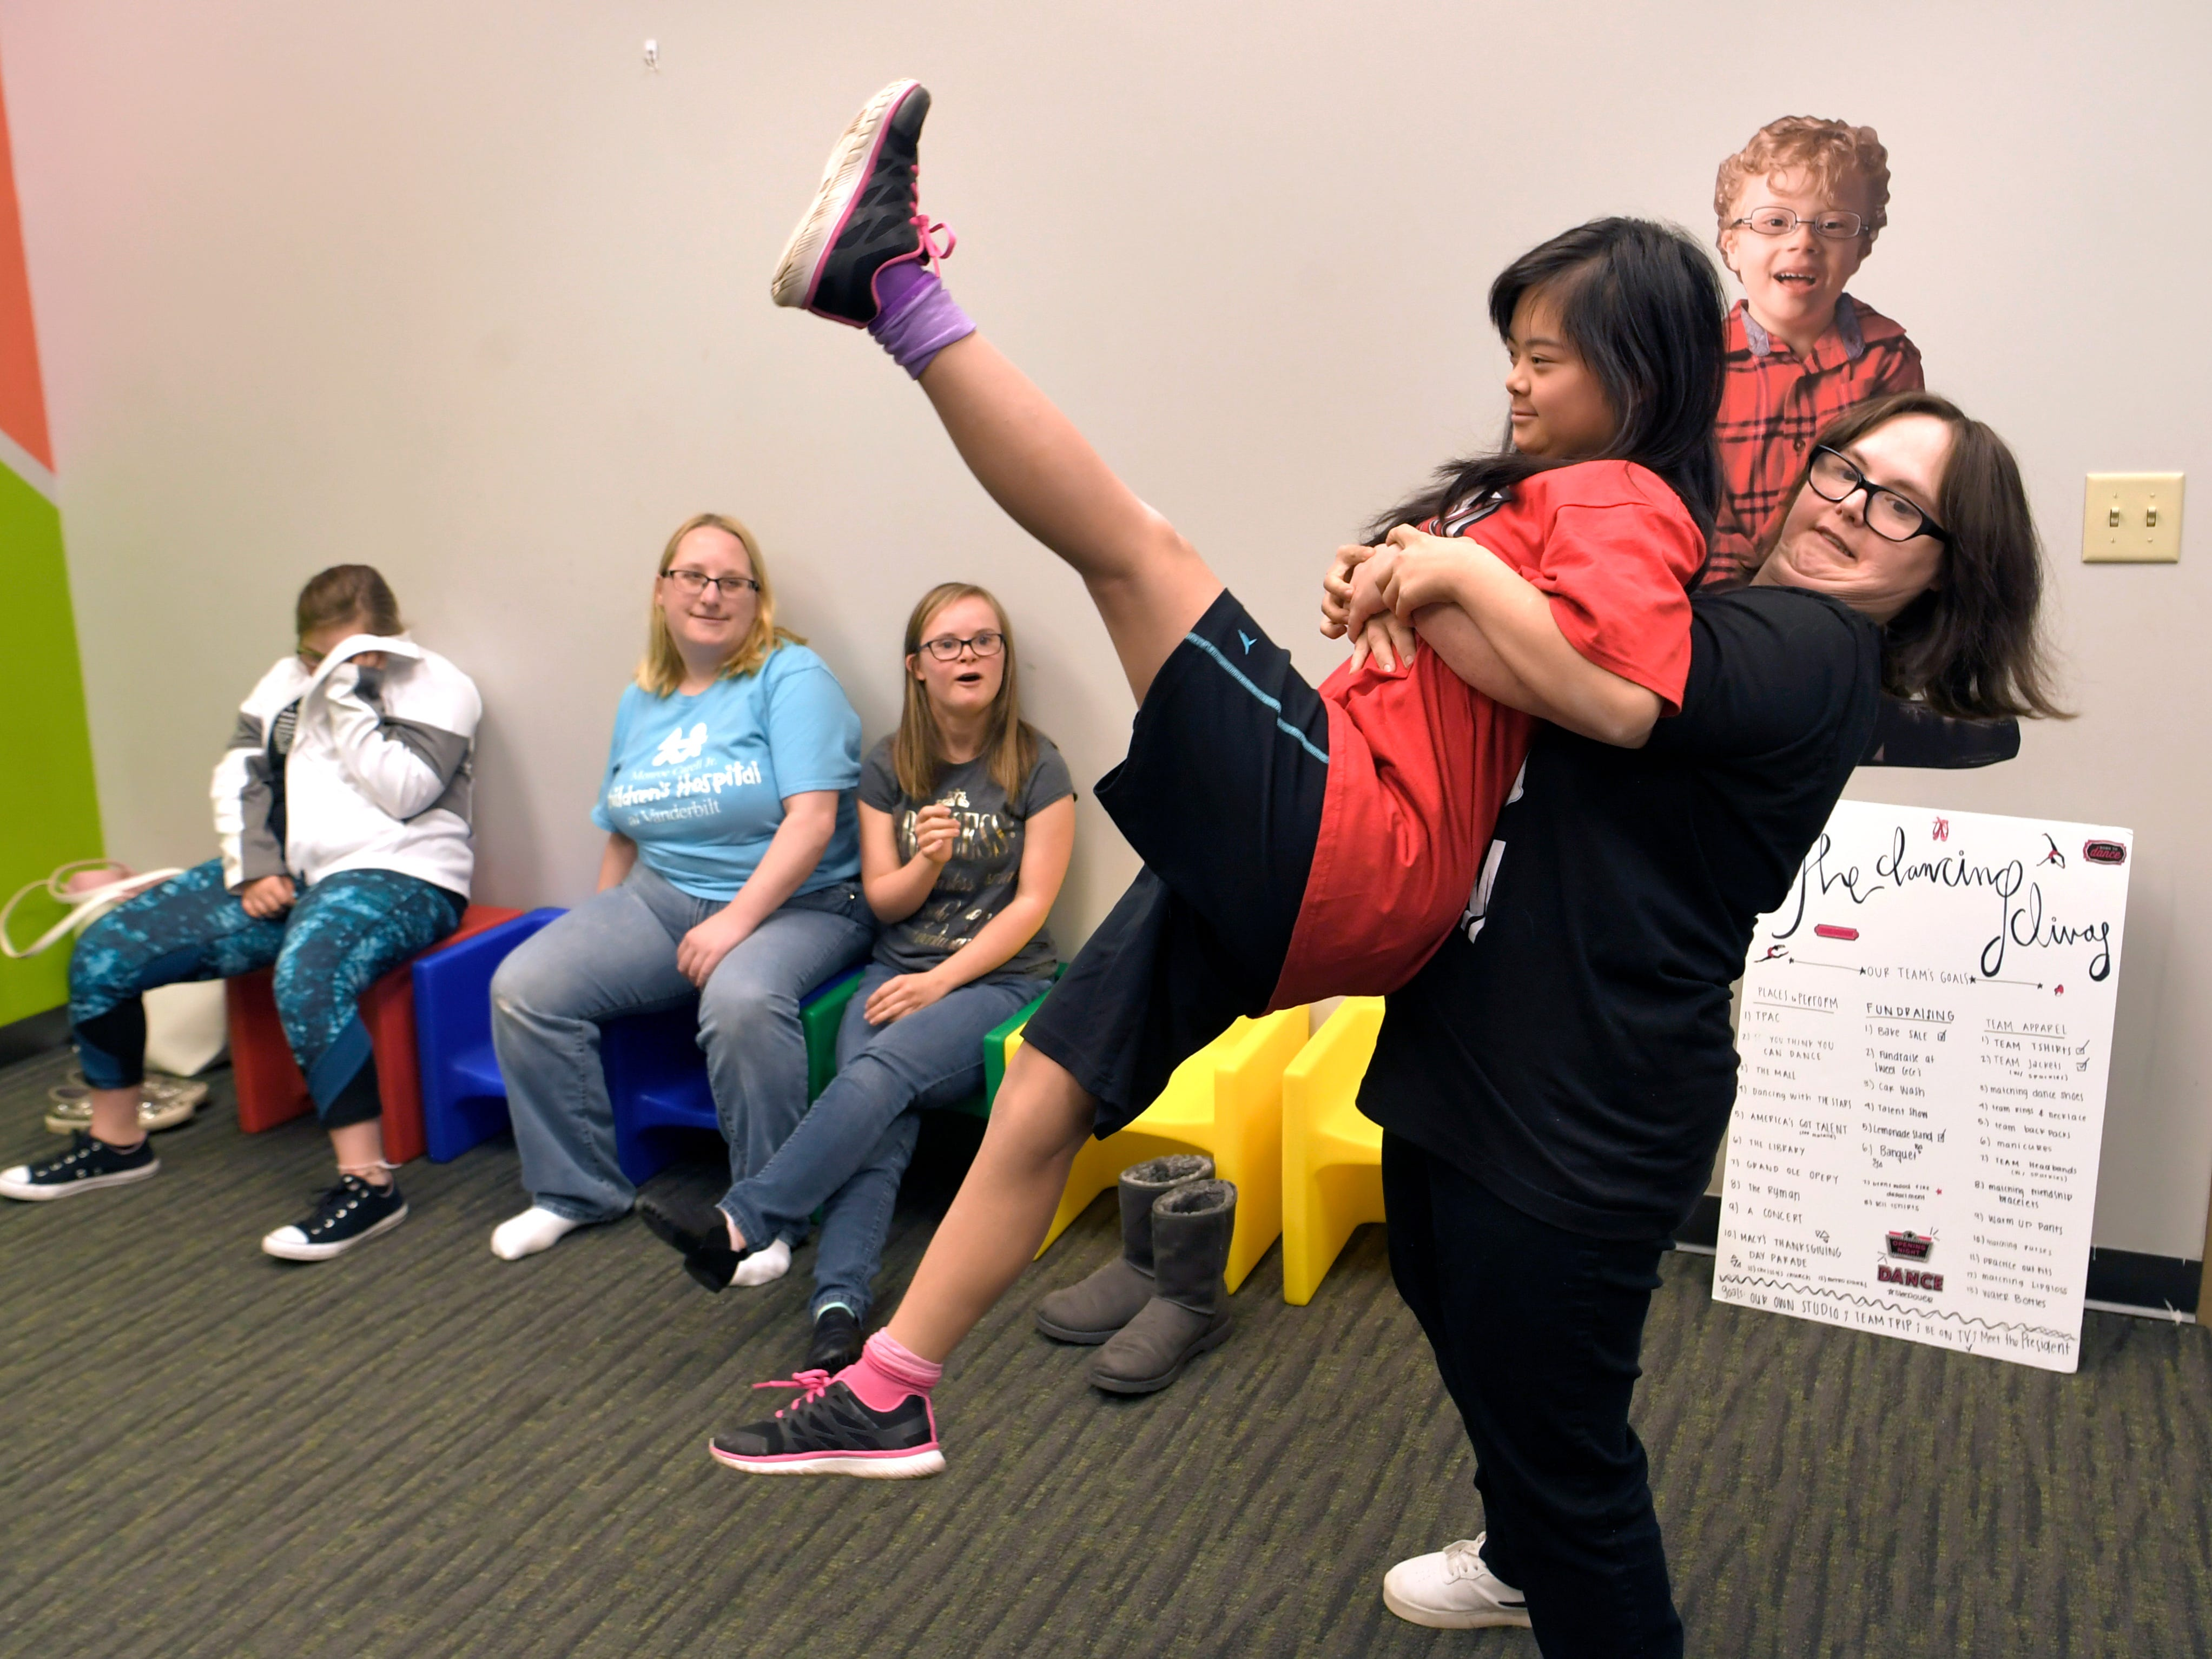 Sisters and Dancing Divas members  Tori and Laney Hammett show off a dance routine during dance team practice at GiGi's Playhouse in Brentwood on Saturday, Jan. 12, 2019.  The Dancing Divas is a special needs dance team based in Brentwood